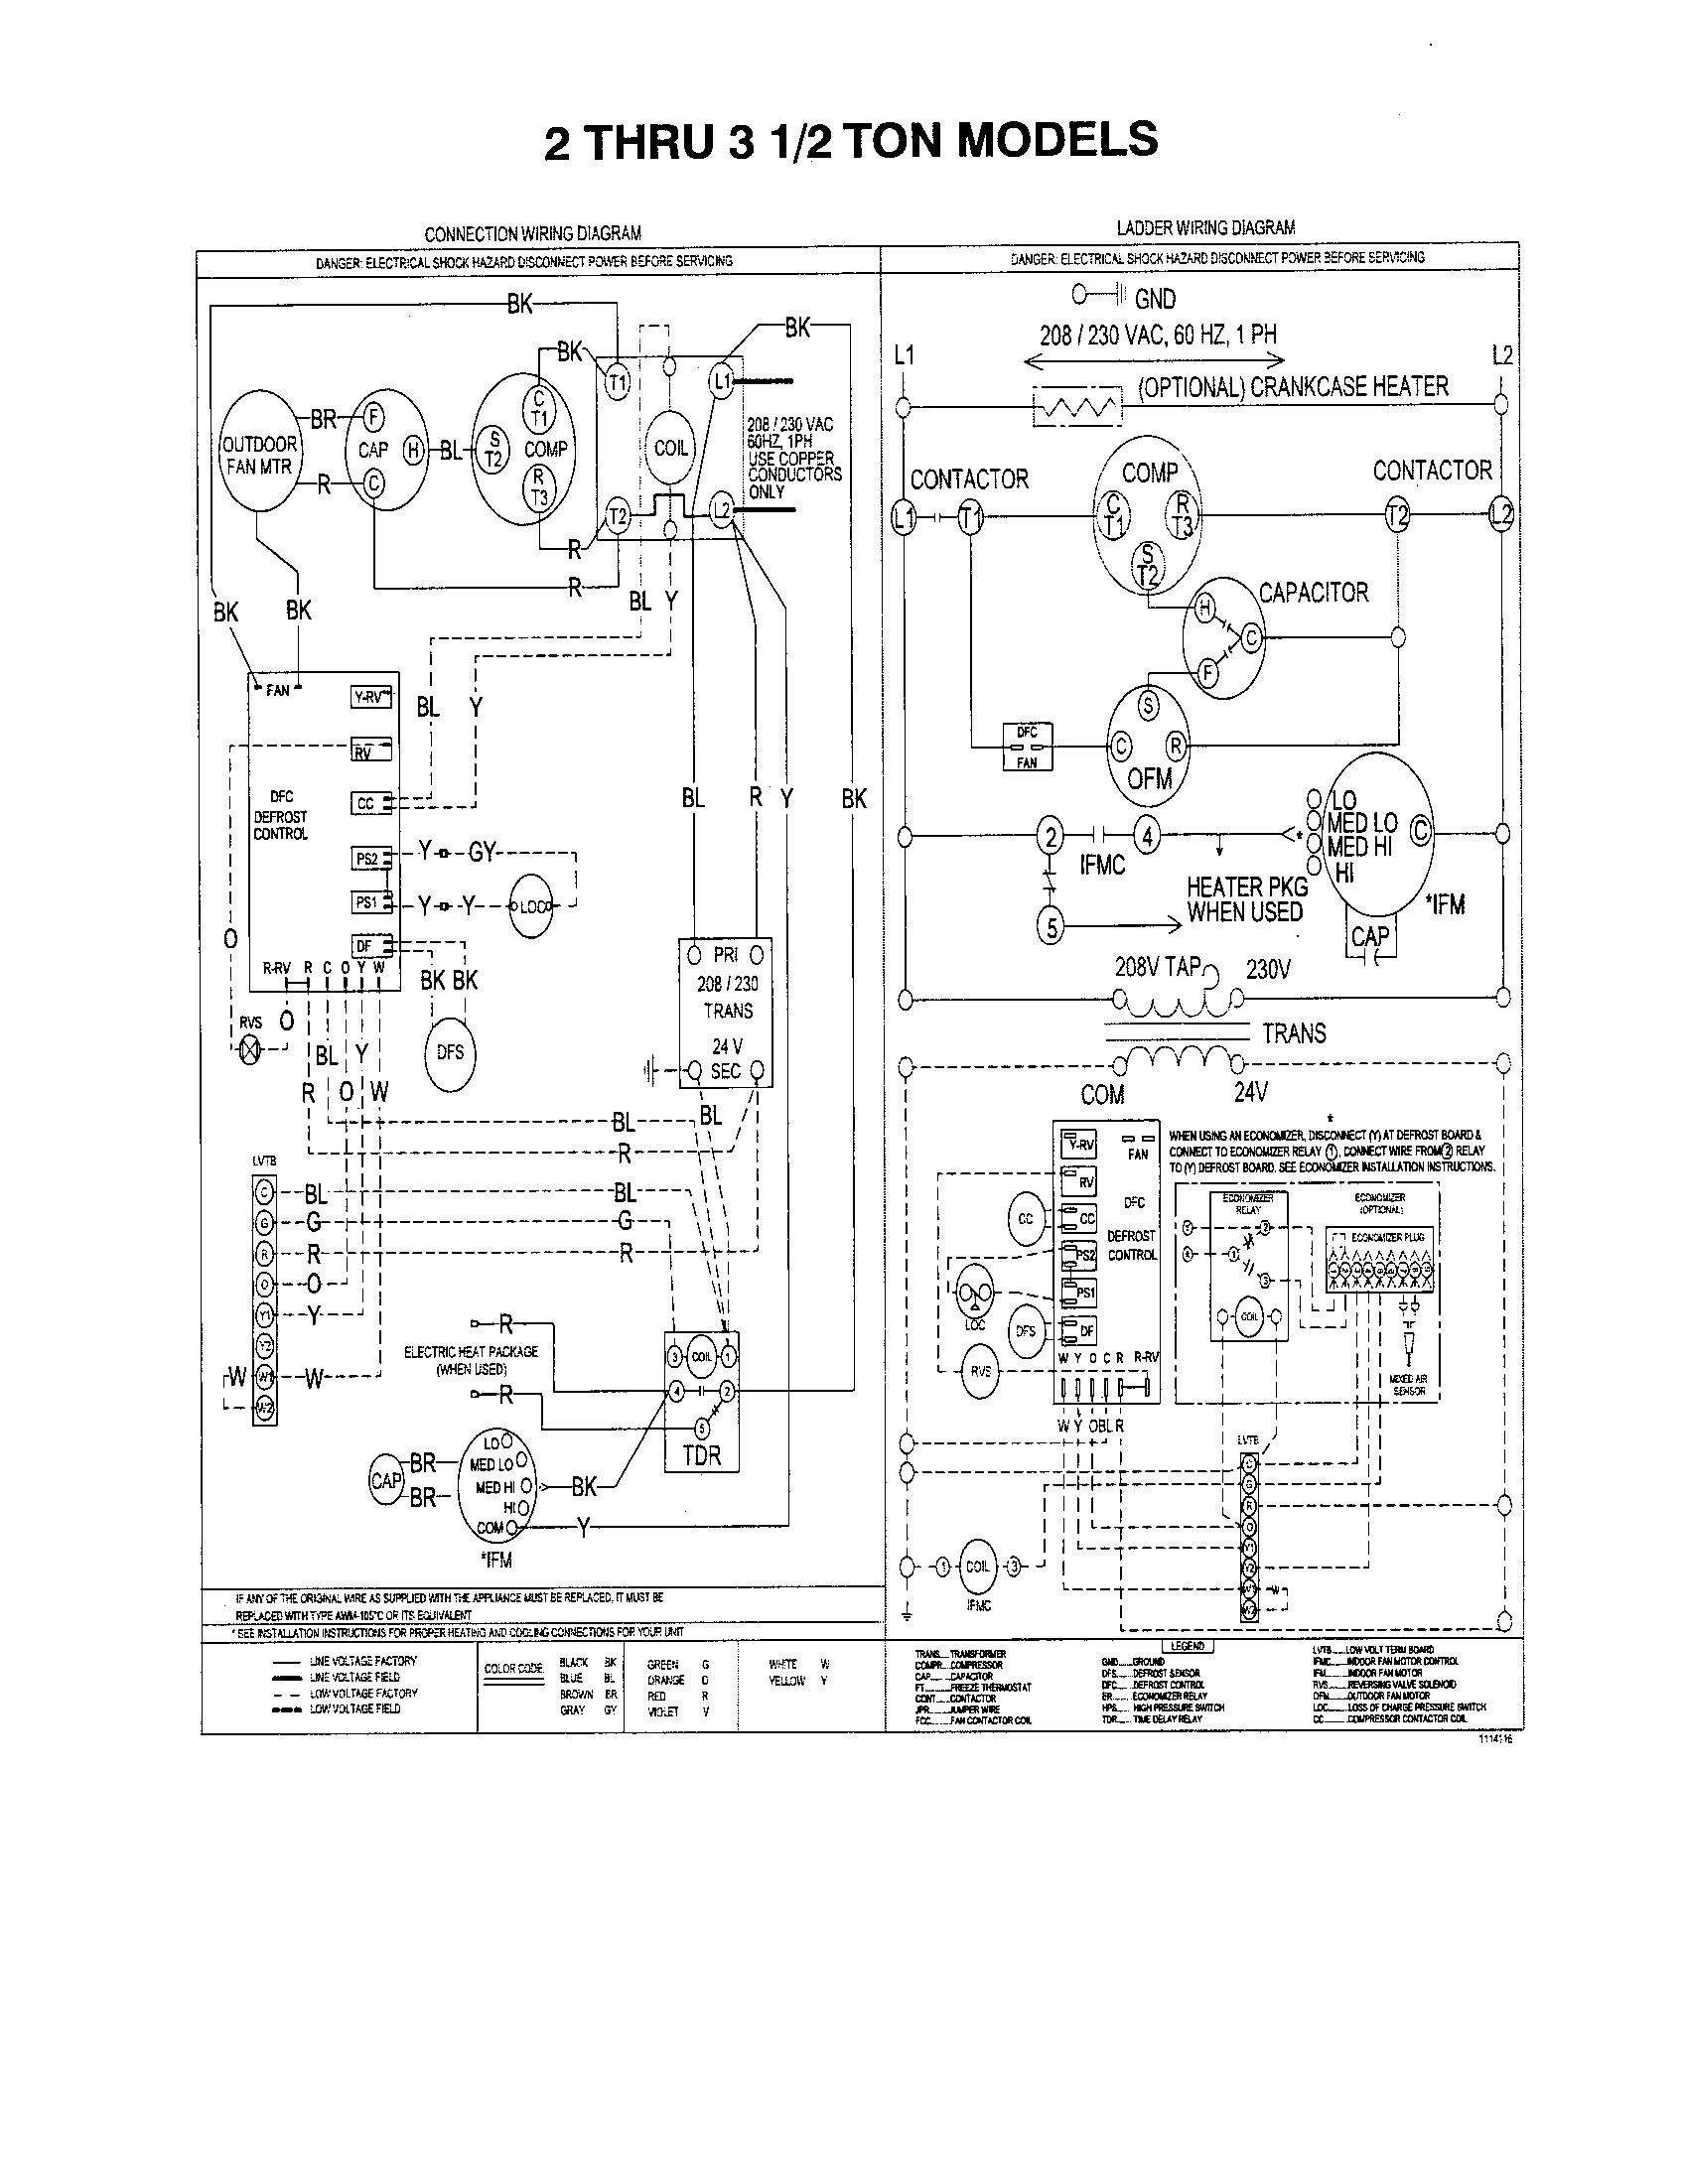 ac unit fan relay wiring diagram